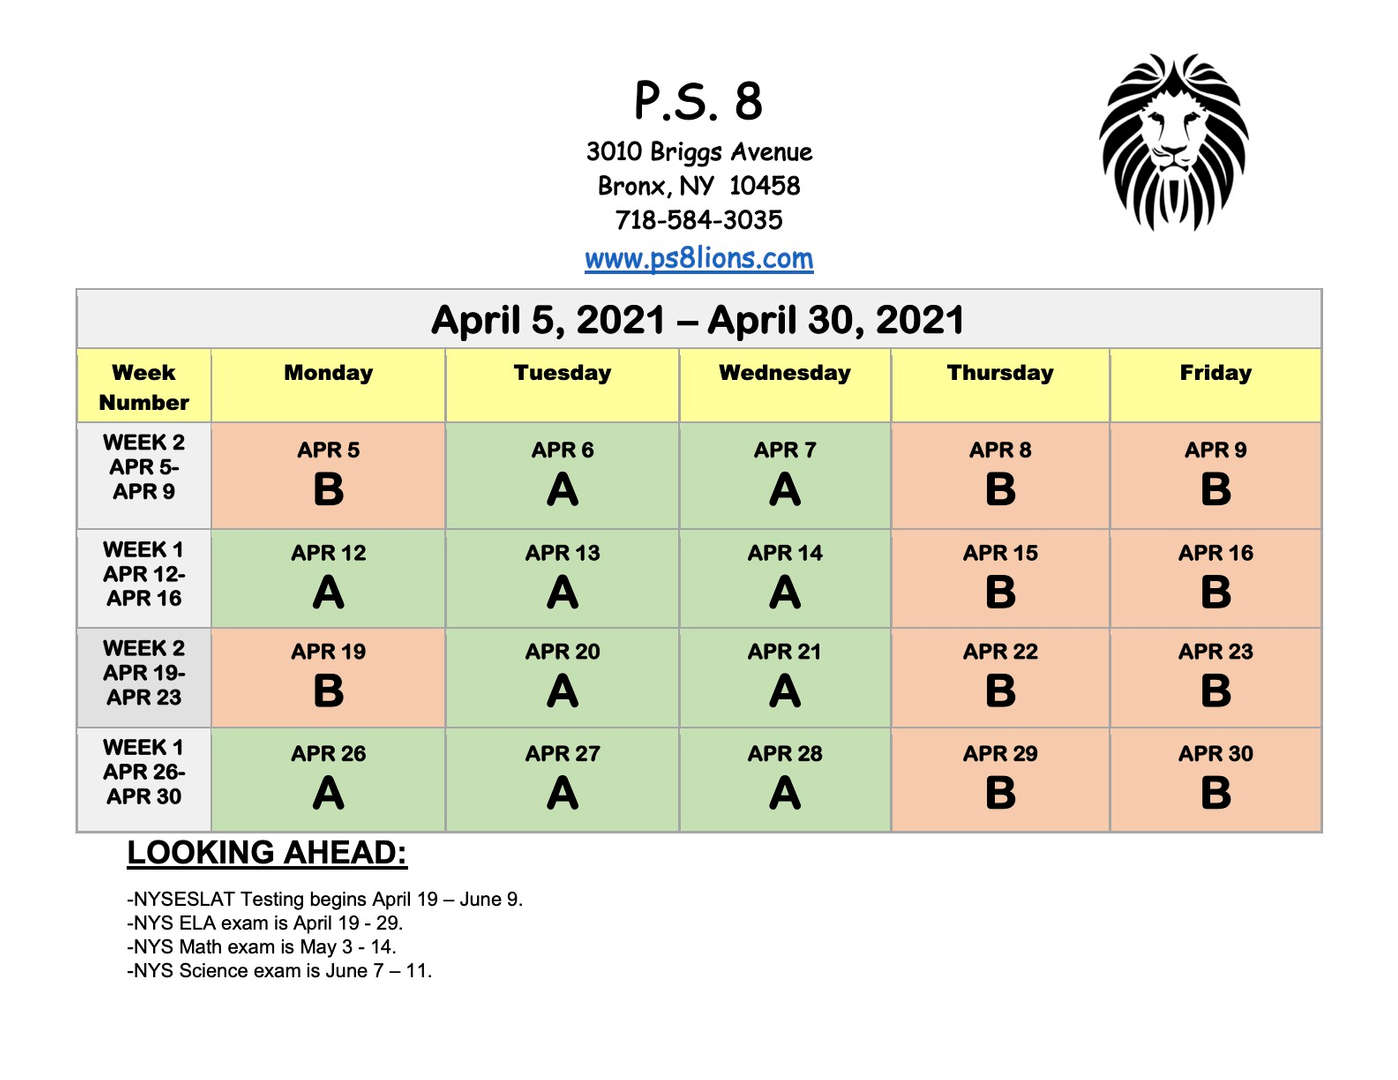 Public School 8 BX, NY scheduled events for April 2021.